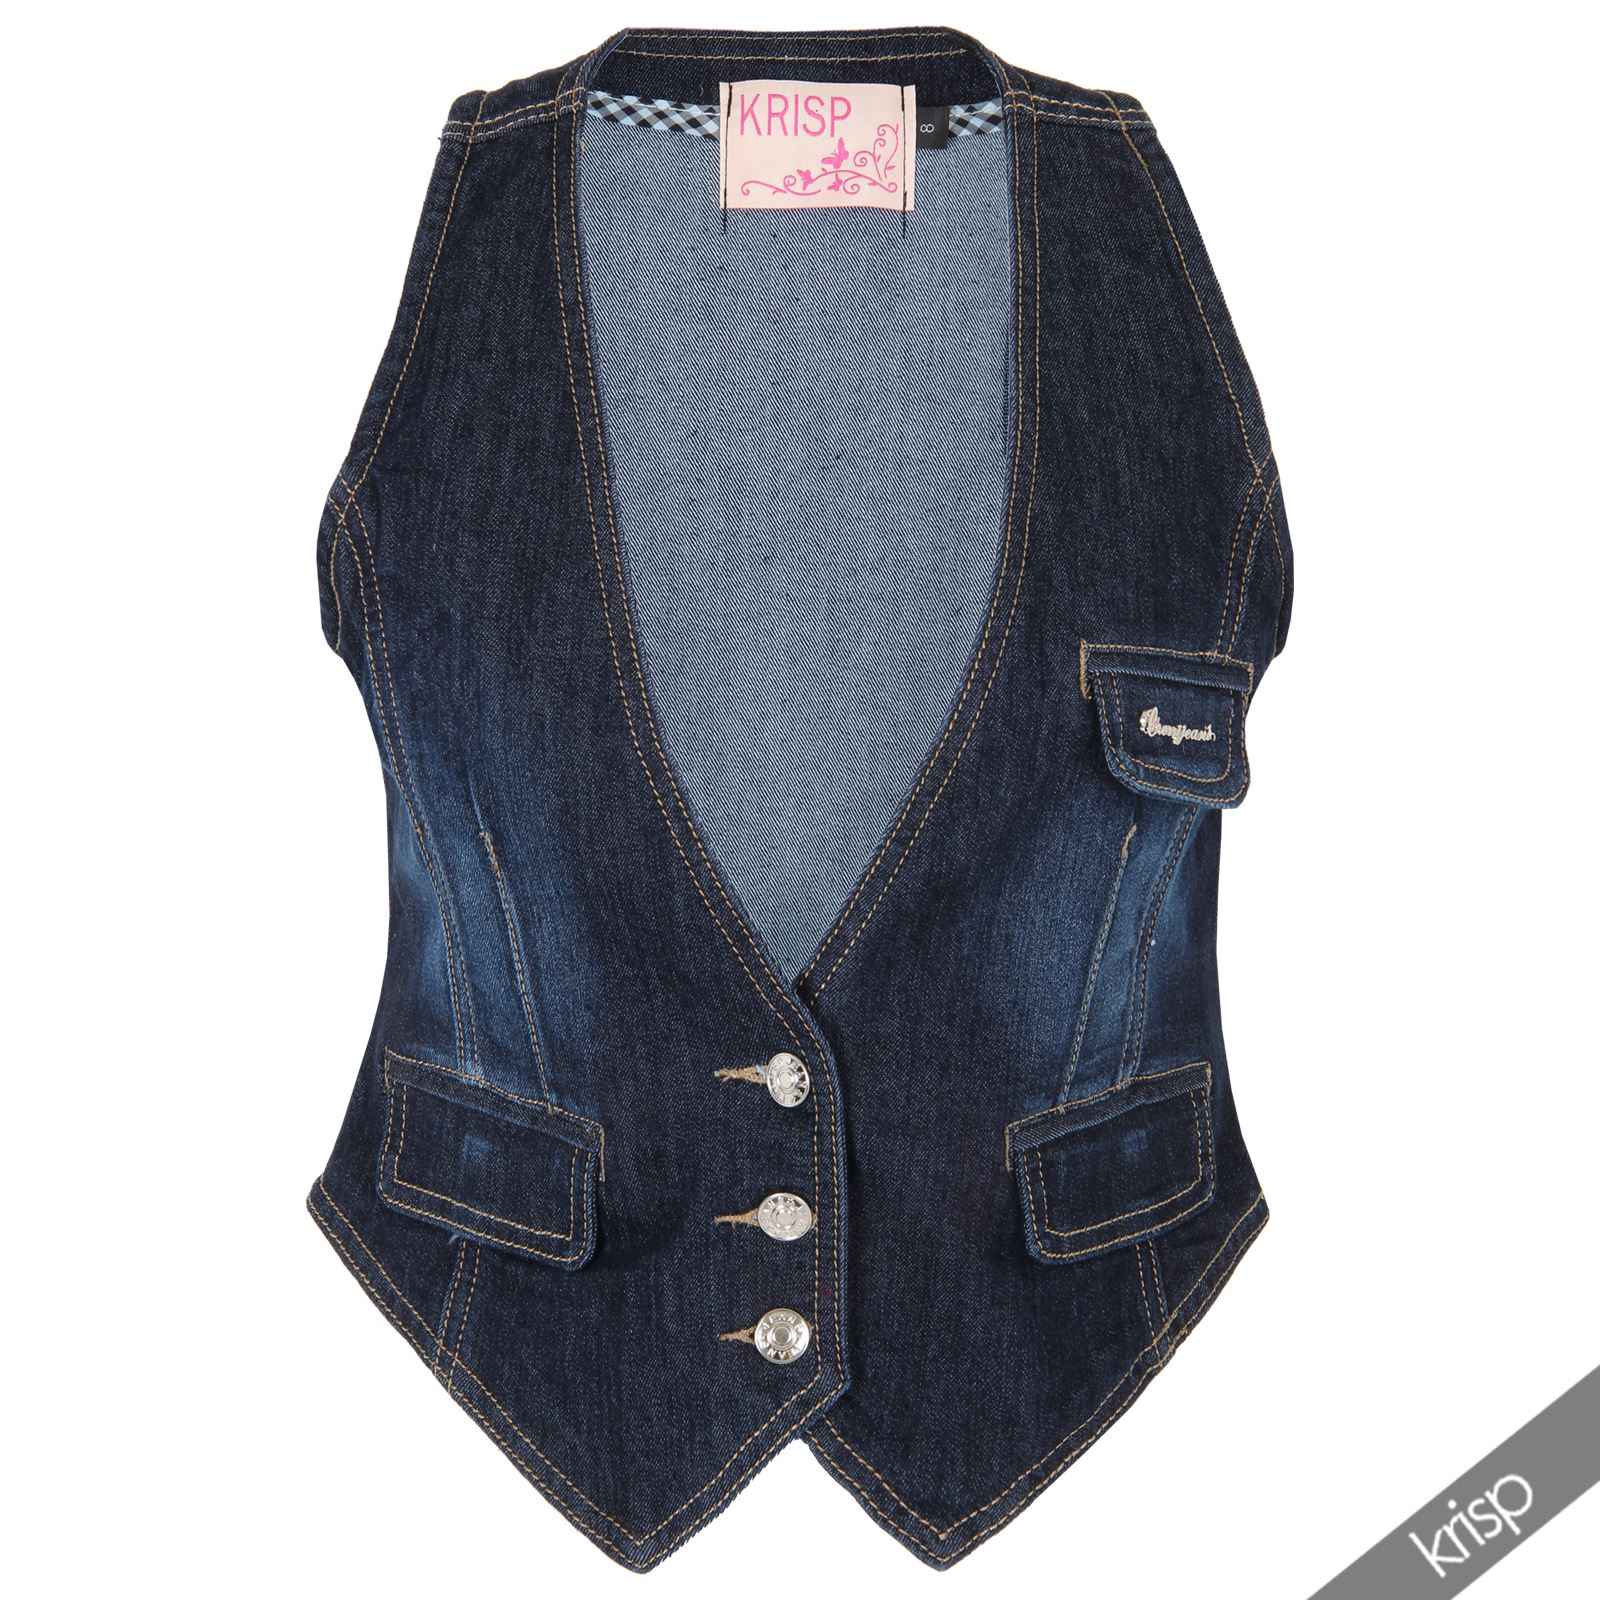 Introduced in , Denim & Supply is the younger, more bohemian sister line from the all-American Ralph Lauren fashion house. It is known for its cool, relaxed casuals that nod to classic Americana style, like this rustic selection of Denim & Supply Ralph Lauren waistcoats.